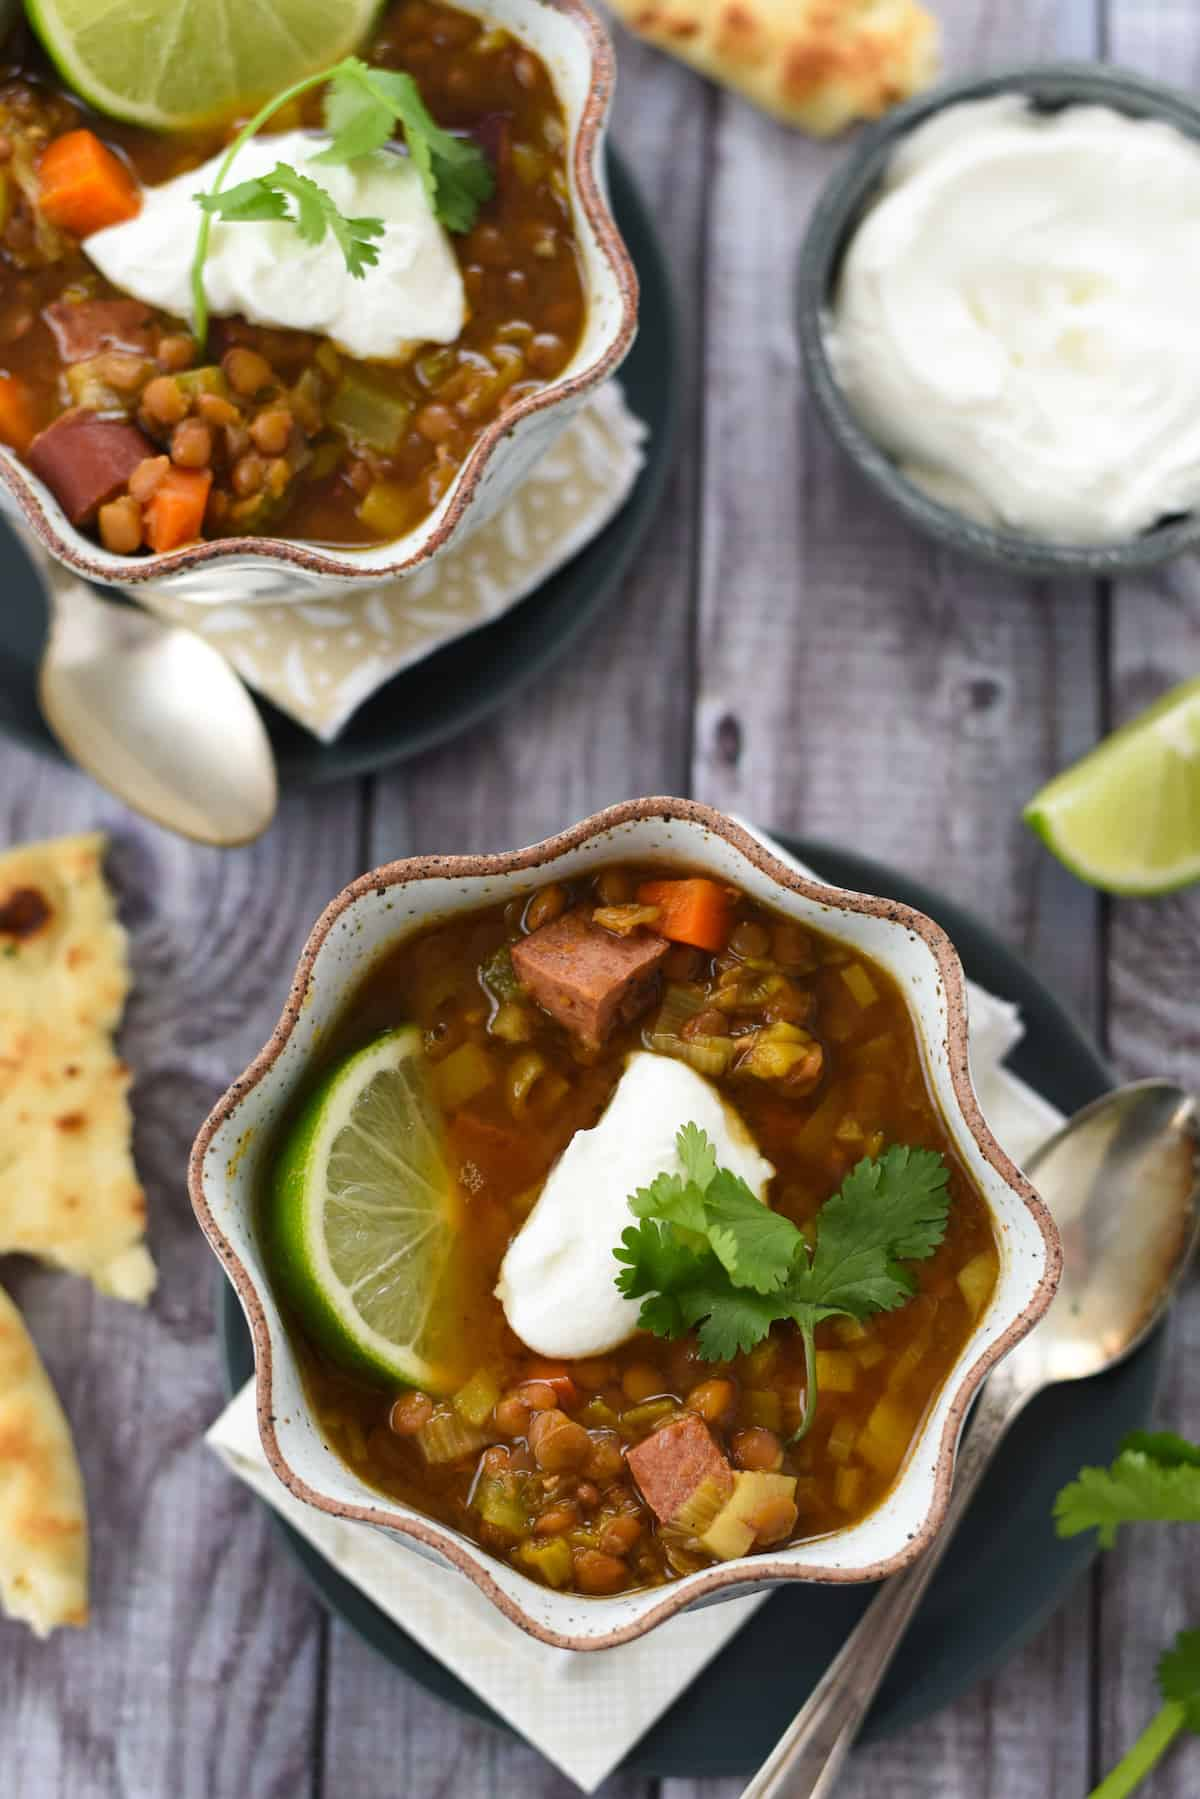 Overhead photos of two bowls of soup with lentils and sausage, with bowl of yogurt and naan bread alongside.